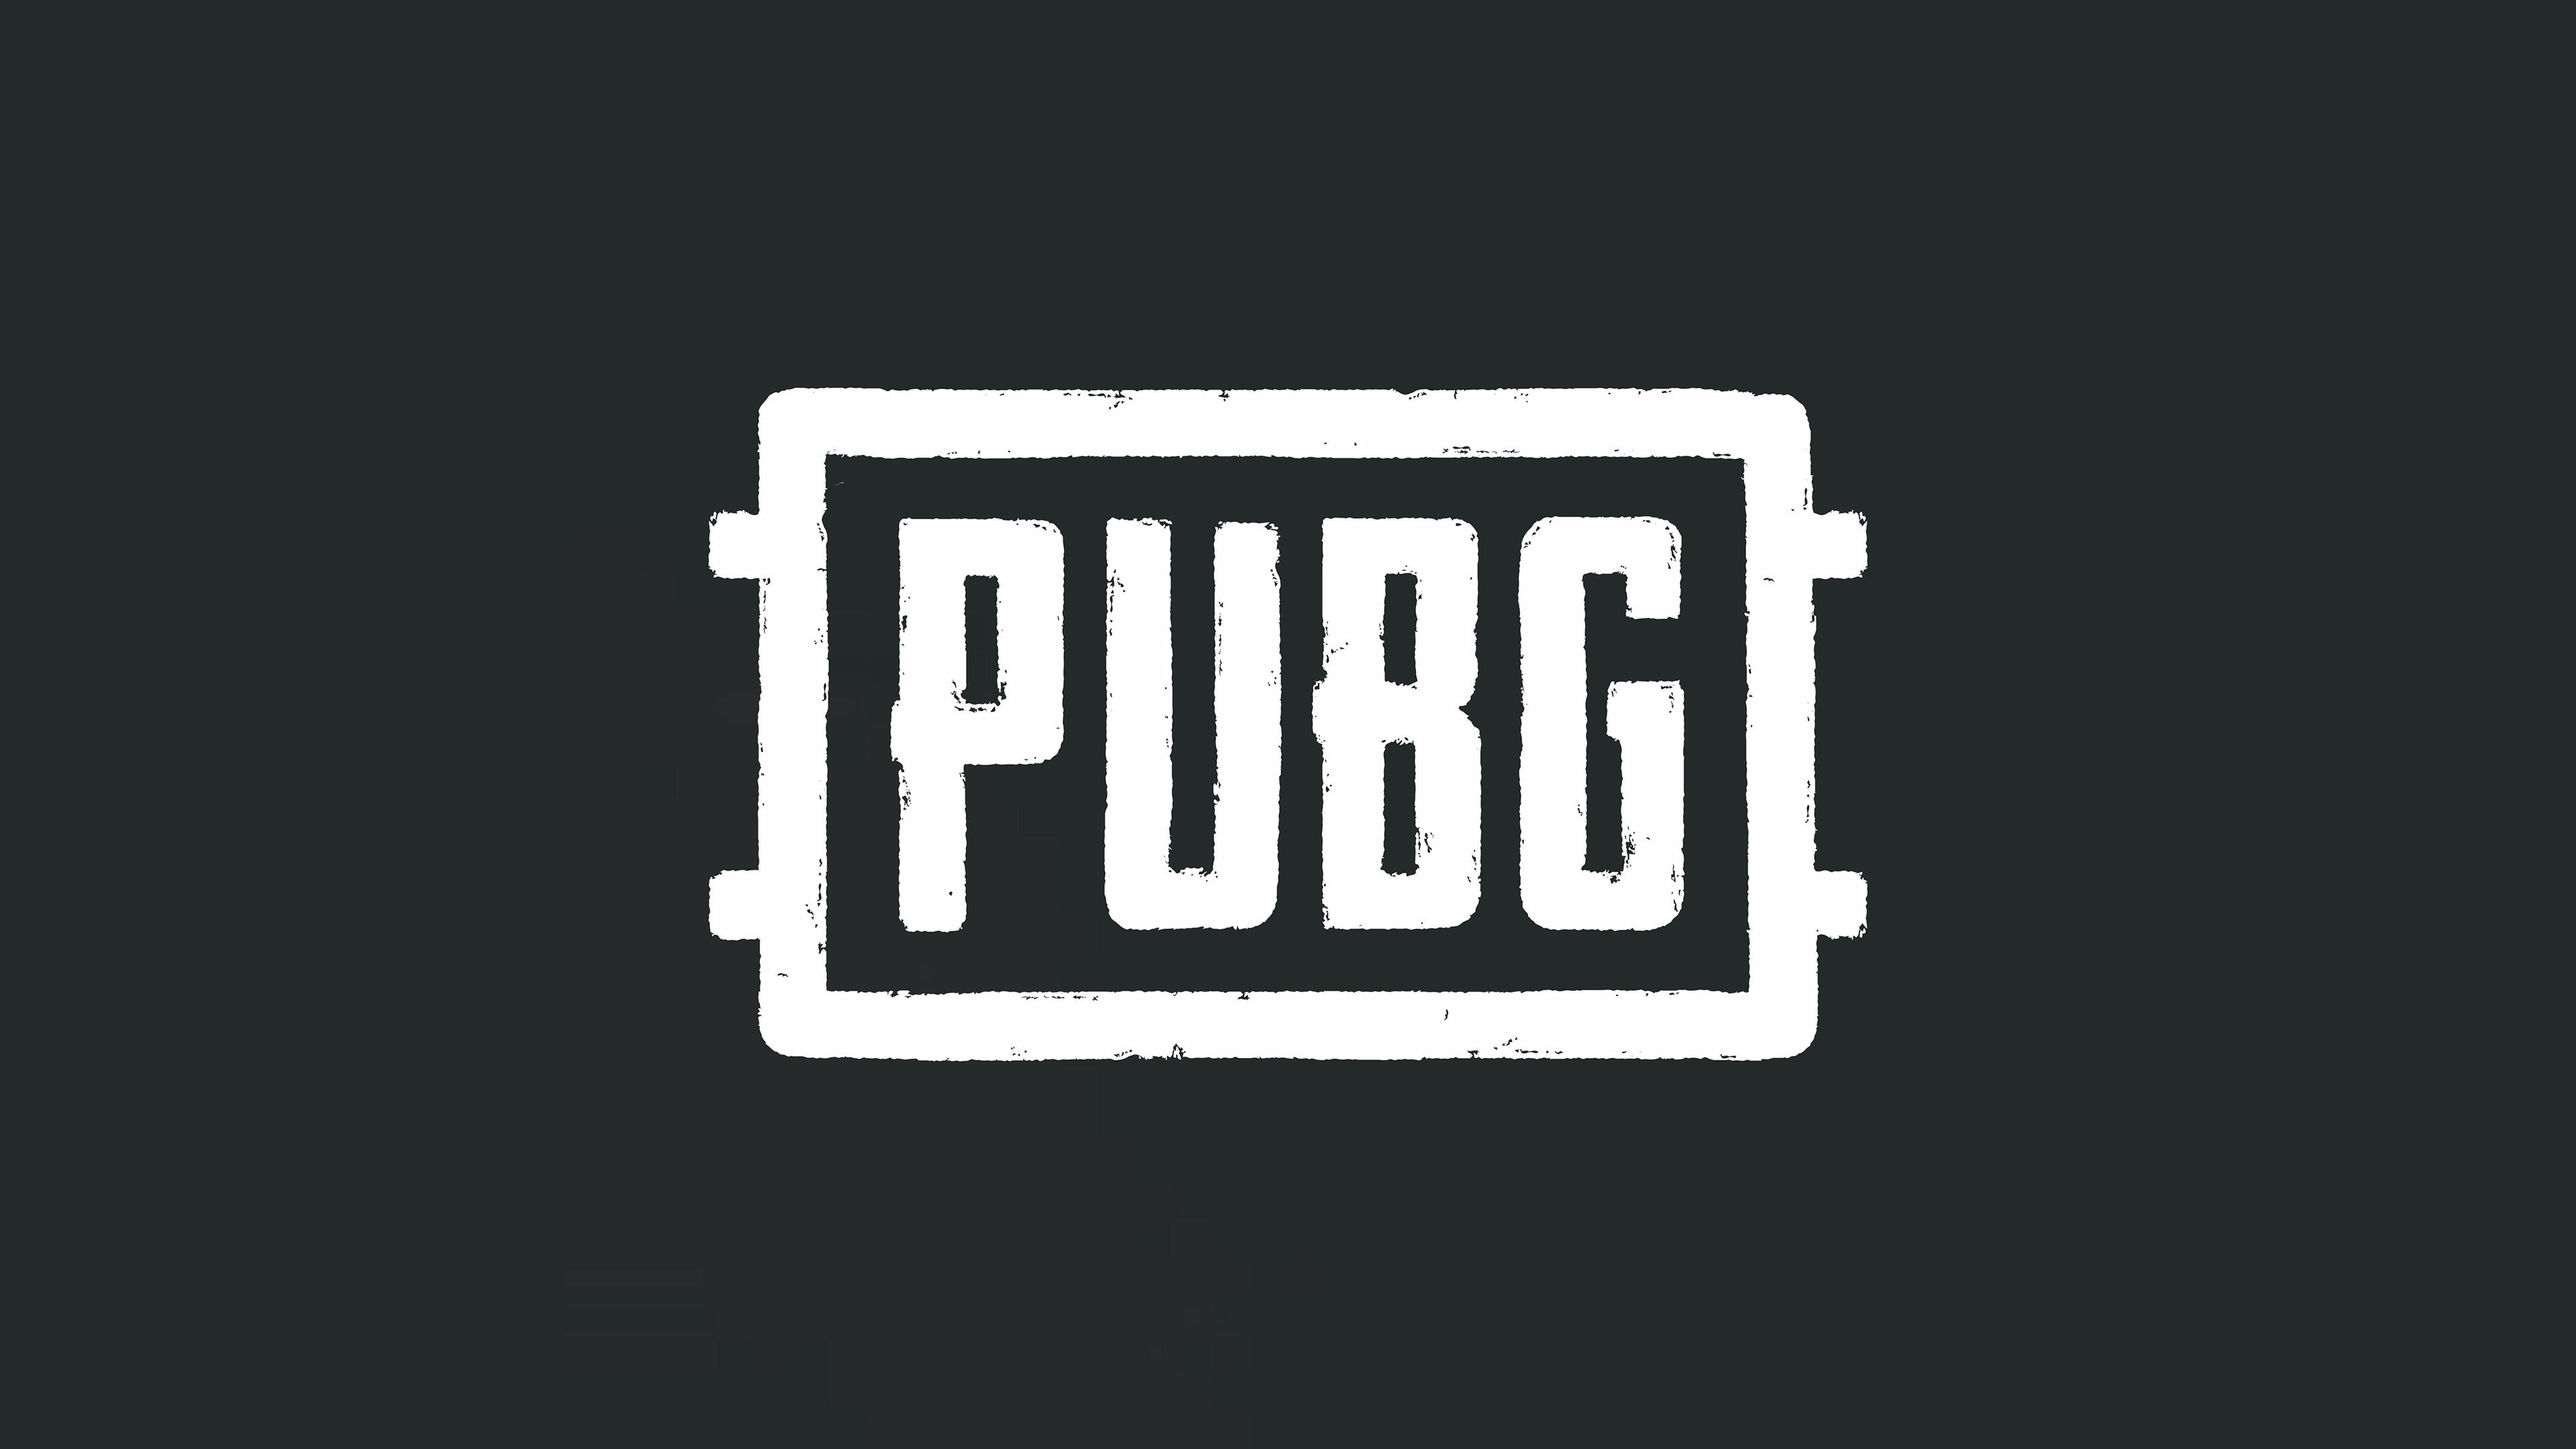 PUBG Game Logo 4k pubg wallpapers, playerunknowns